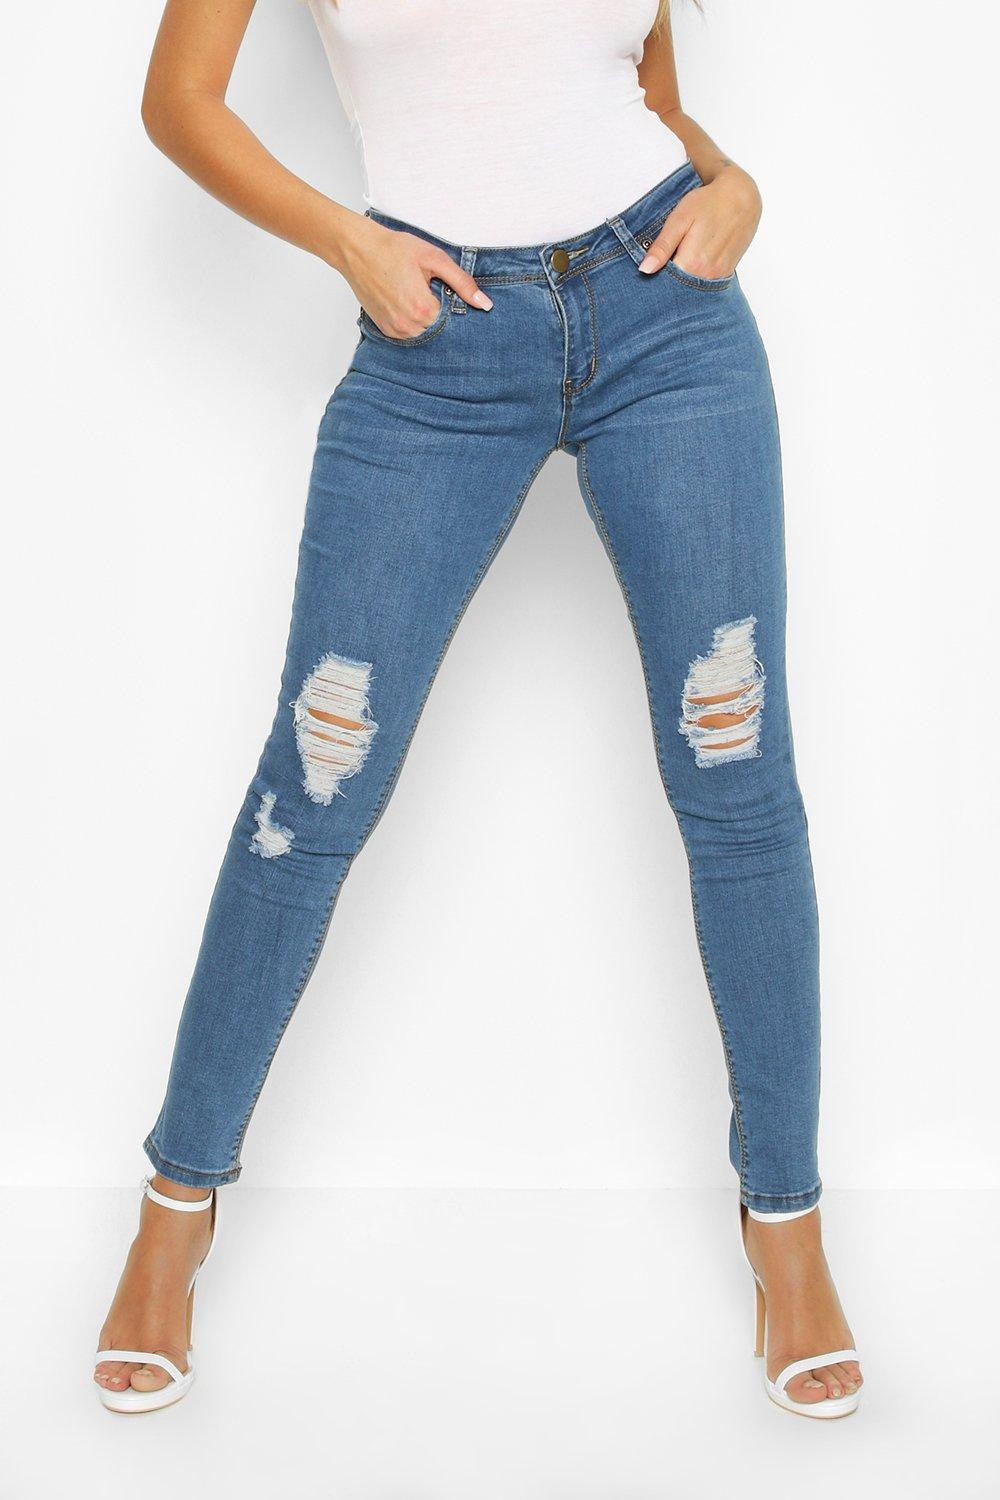 c7b488176b60 Womens Blue Mid Rise Distressed Rip Knee Skinny Jeans. Hover to zoom. Close  video